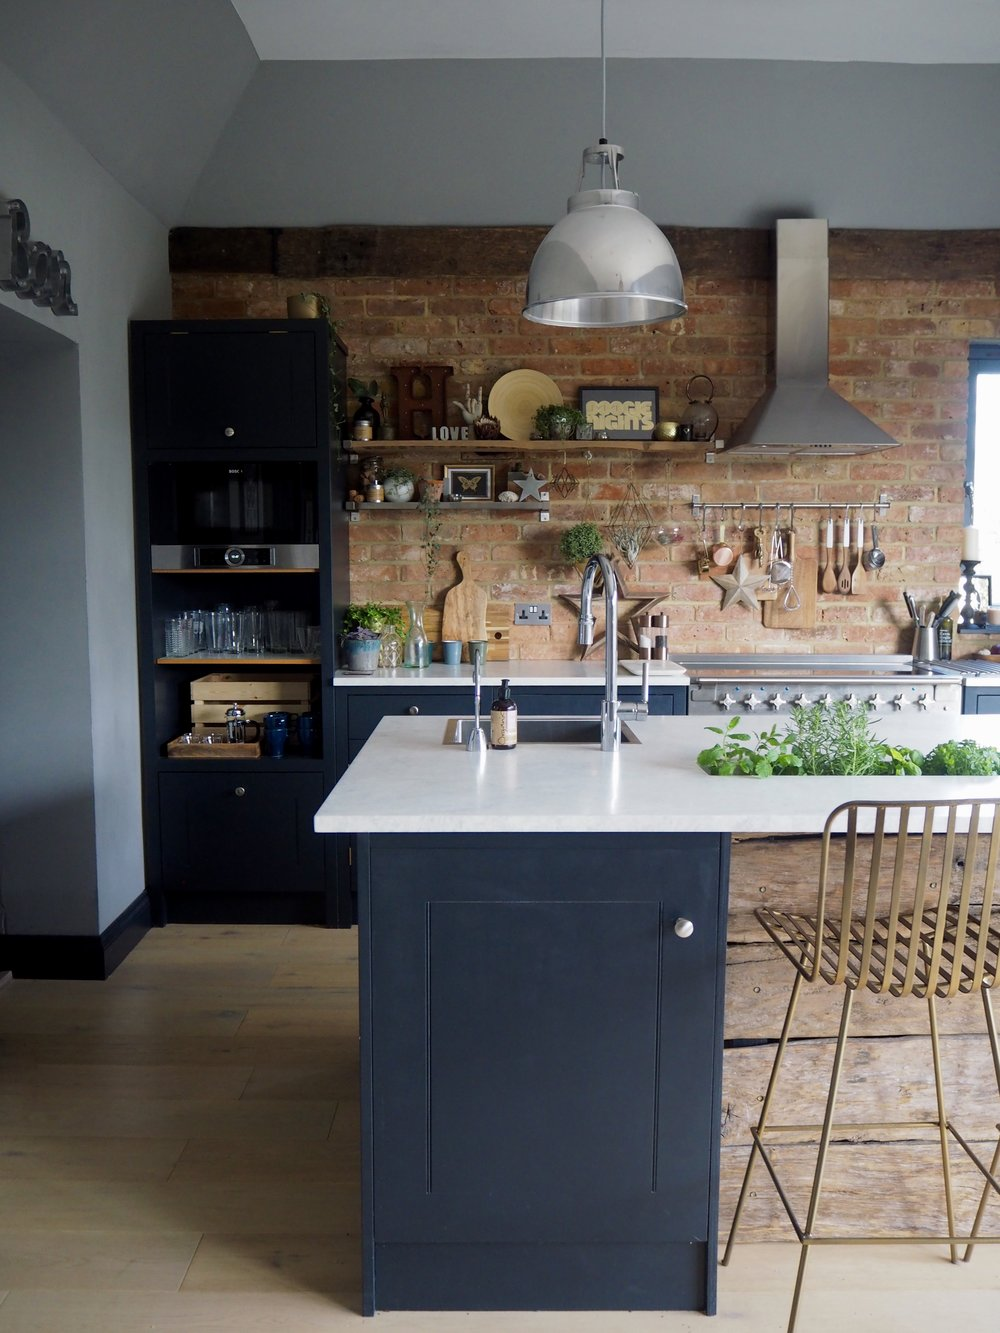 I Absolutely Love The Rustic Feel The Brick Wall Gives The Kitchen, It Adds  A Real Warmness To The Space And Is The Main Focal Point Of The Room.